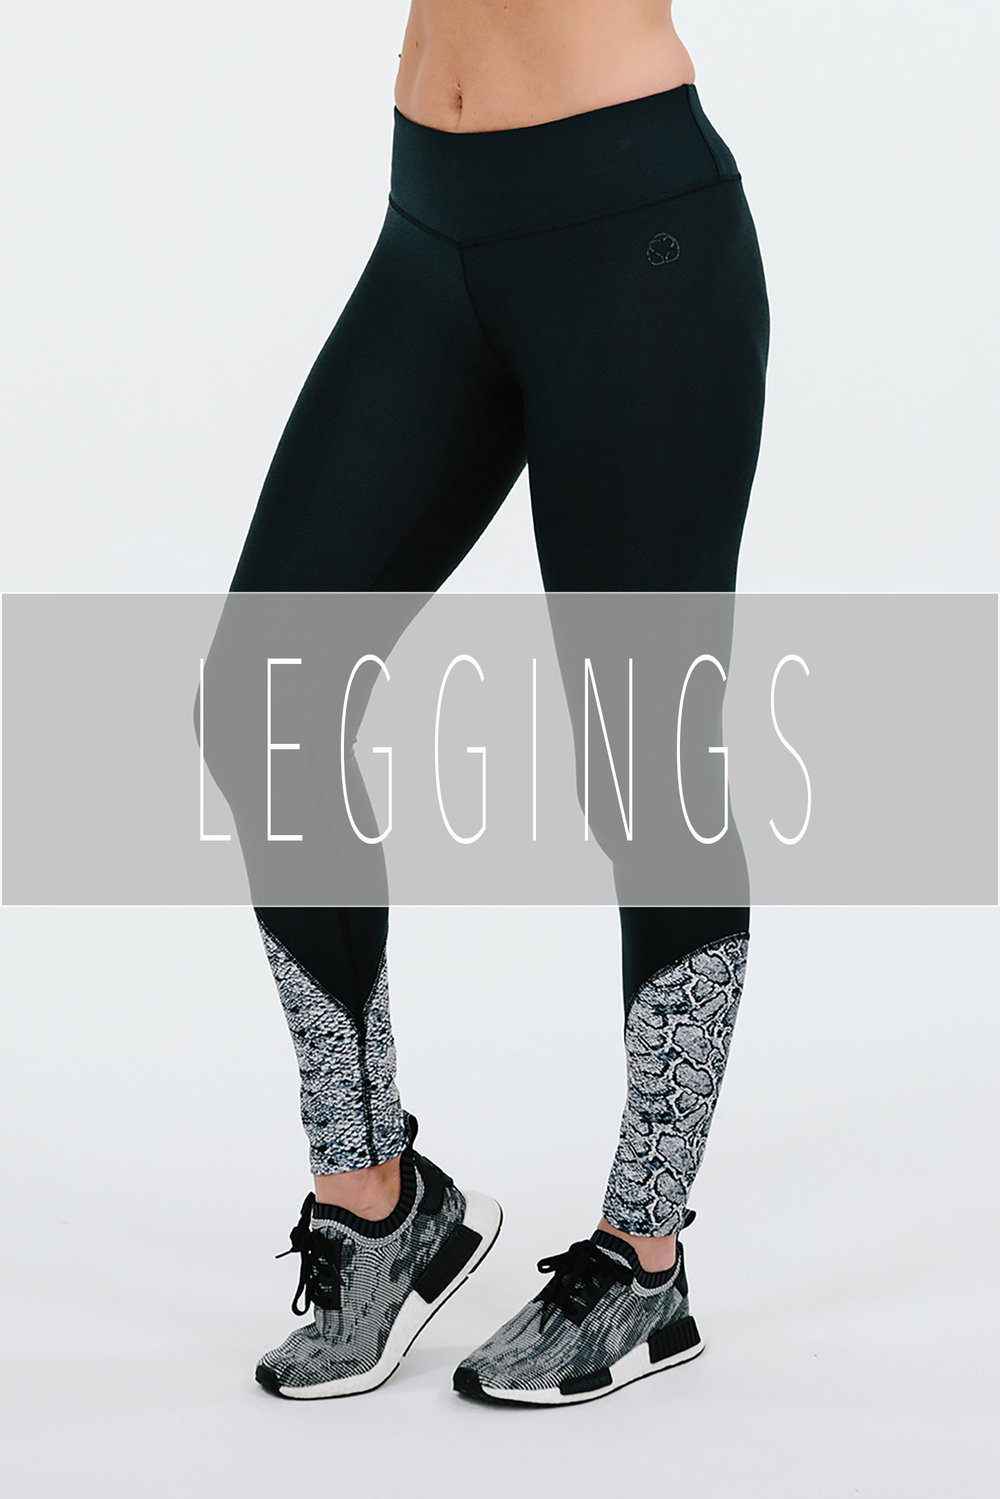 return_to_leggings